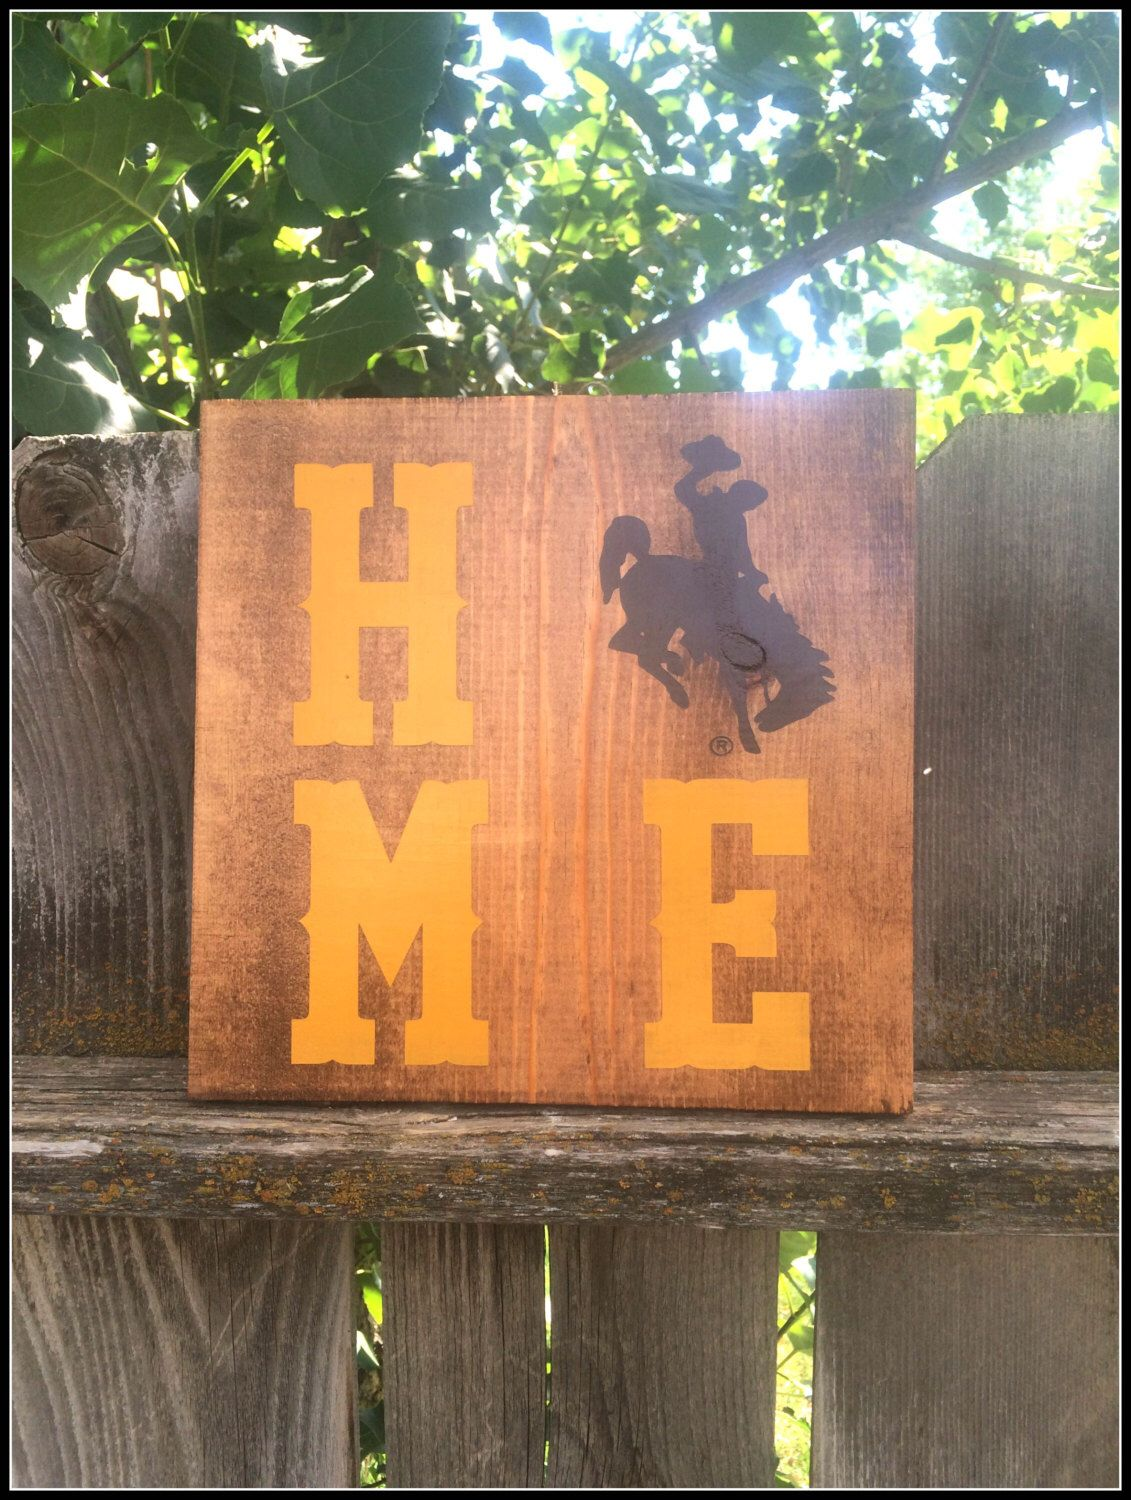 Licensed University Of Wyoming Home Sign  College Dorm Decor  UW Home  Wood  Sign  Home Decor  Steam Boat  Dorm Room  Go Pokes  Wyoming Cowbo